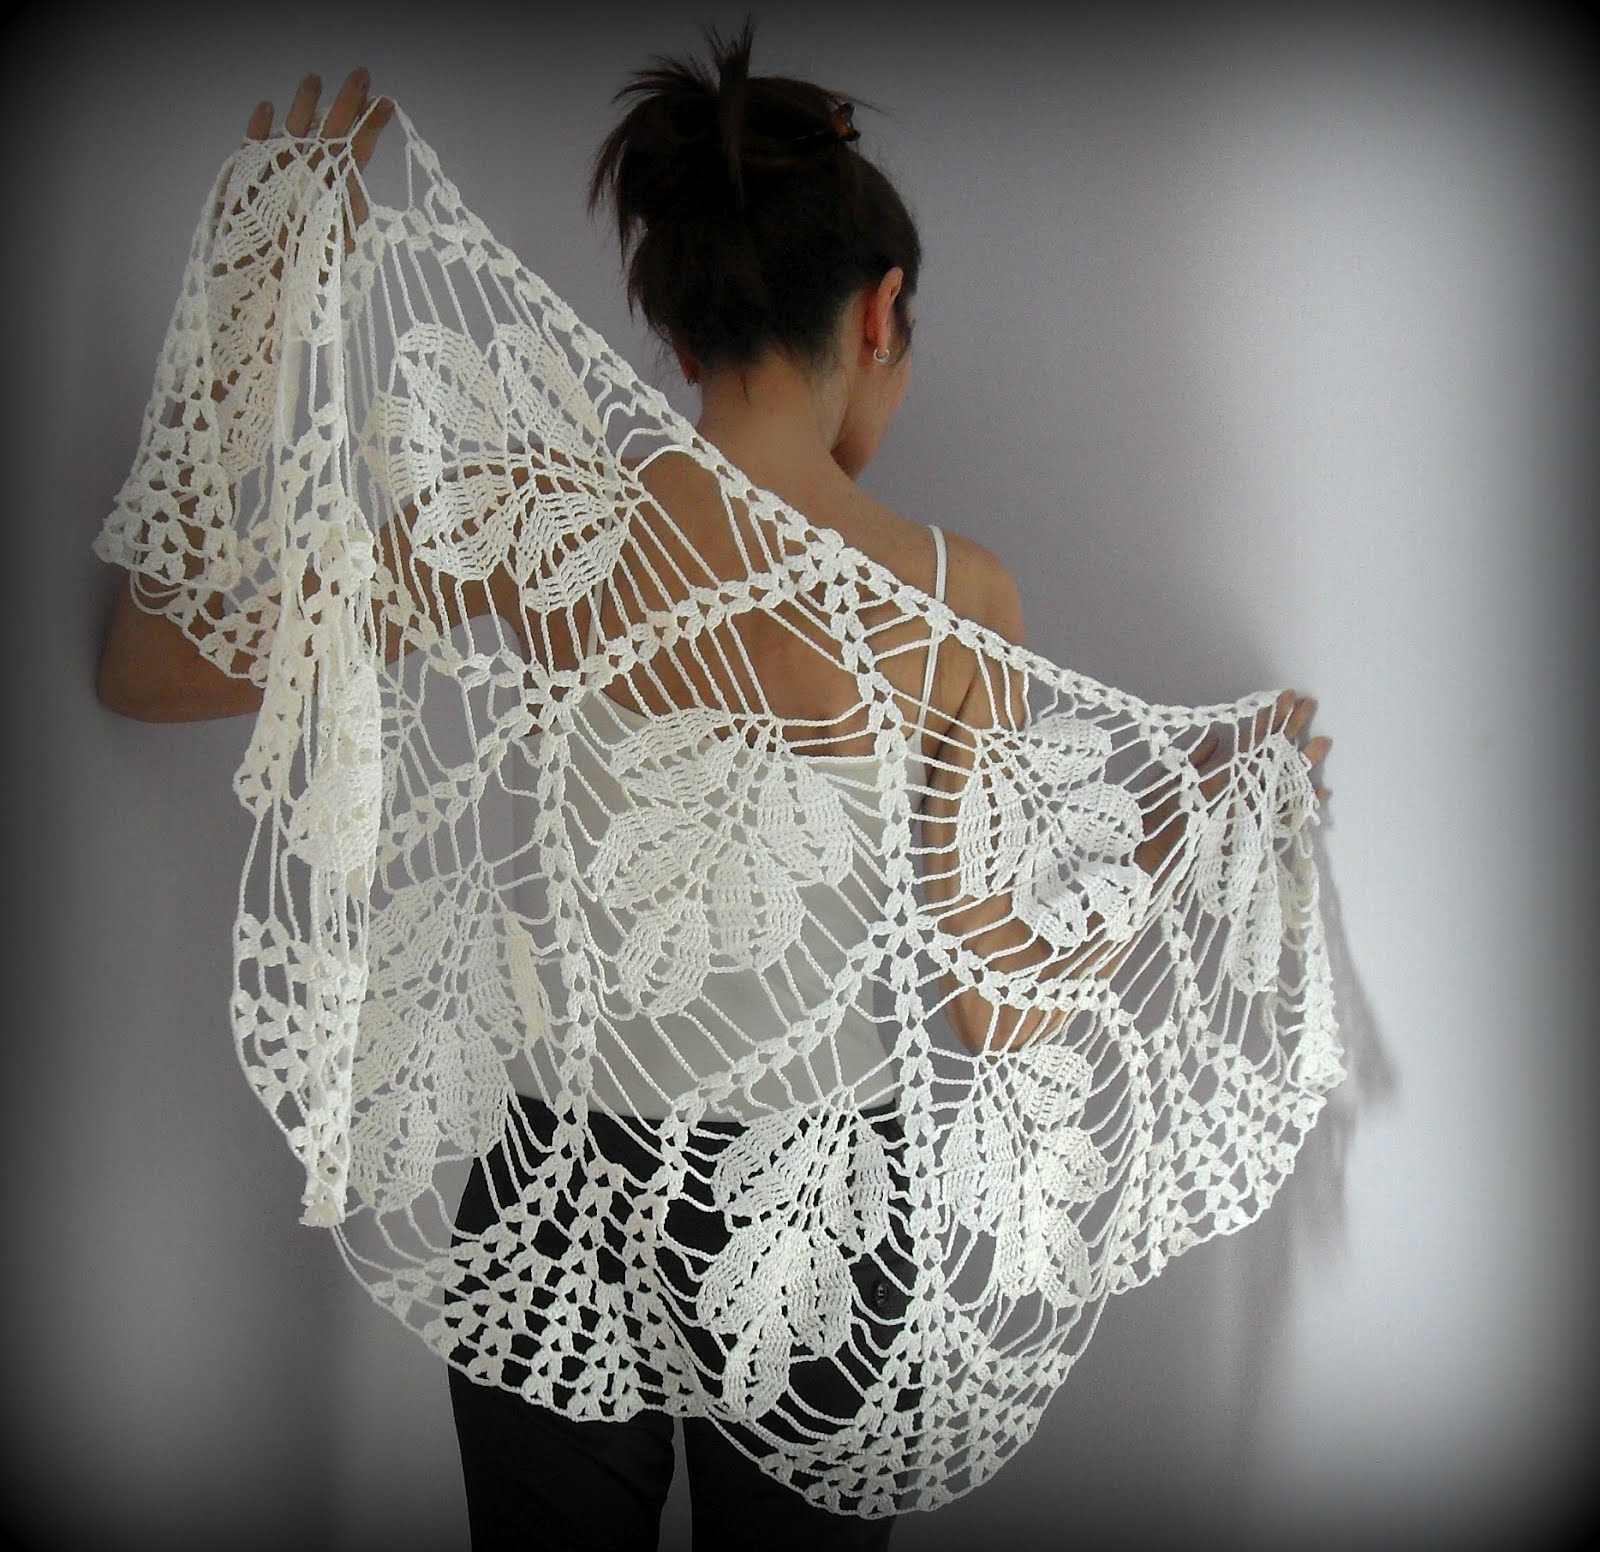 Crochet Patterns Shawls And Wraps : SILVIA66: WHITE LEAVES- Hand Crochet Lace Wrap Shawl